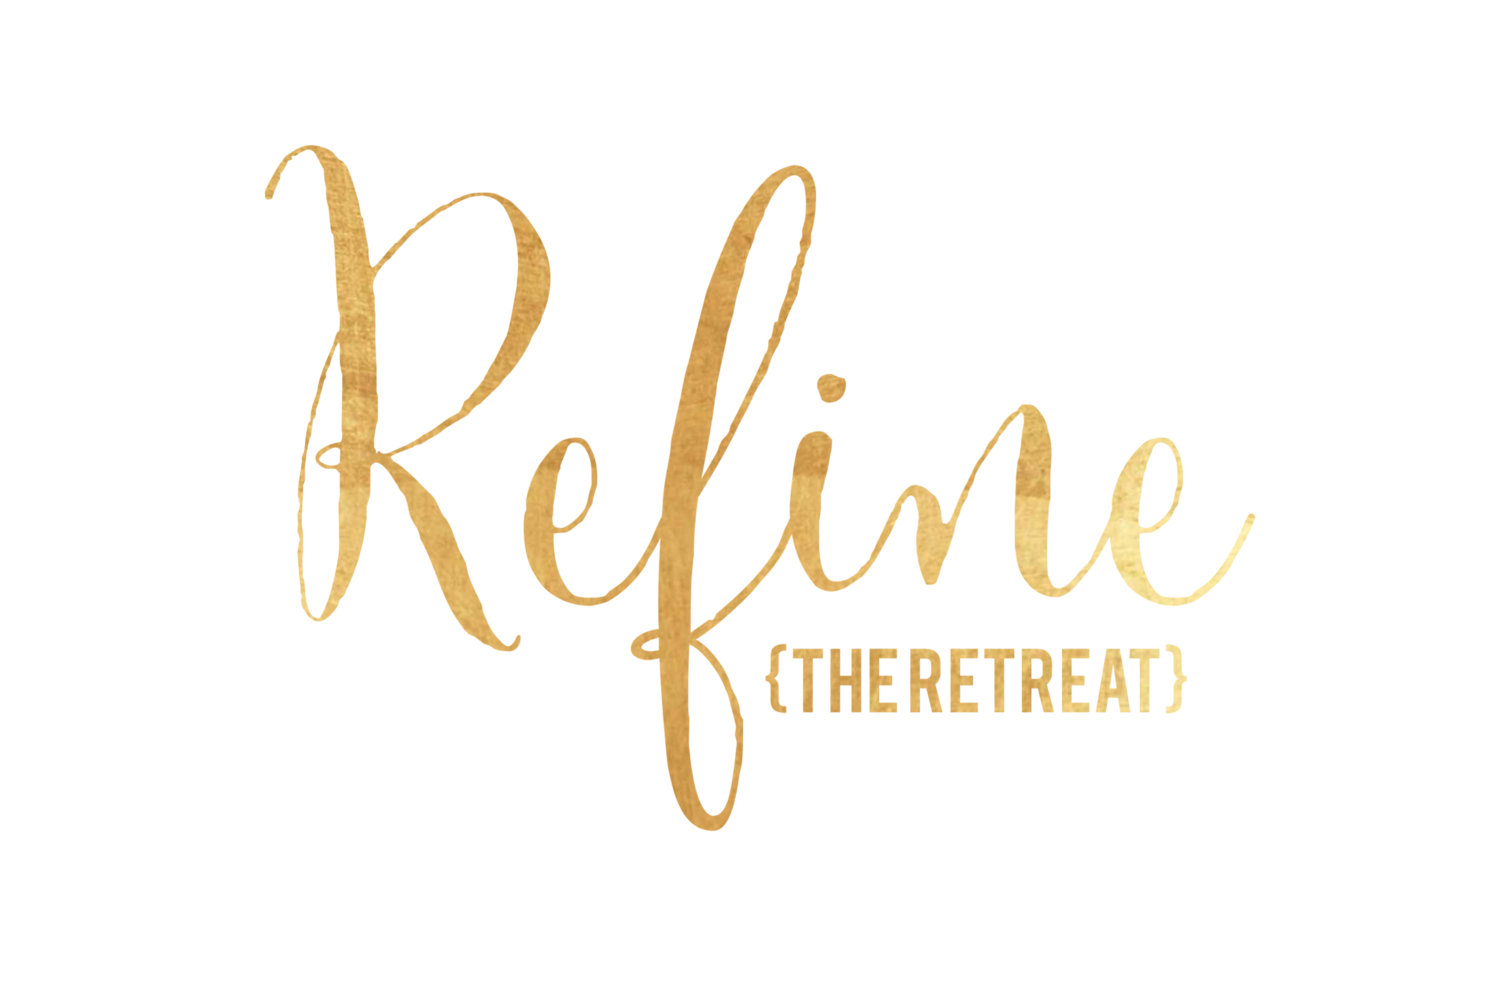 Refine {the retreat}